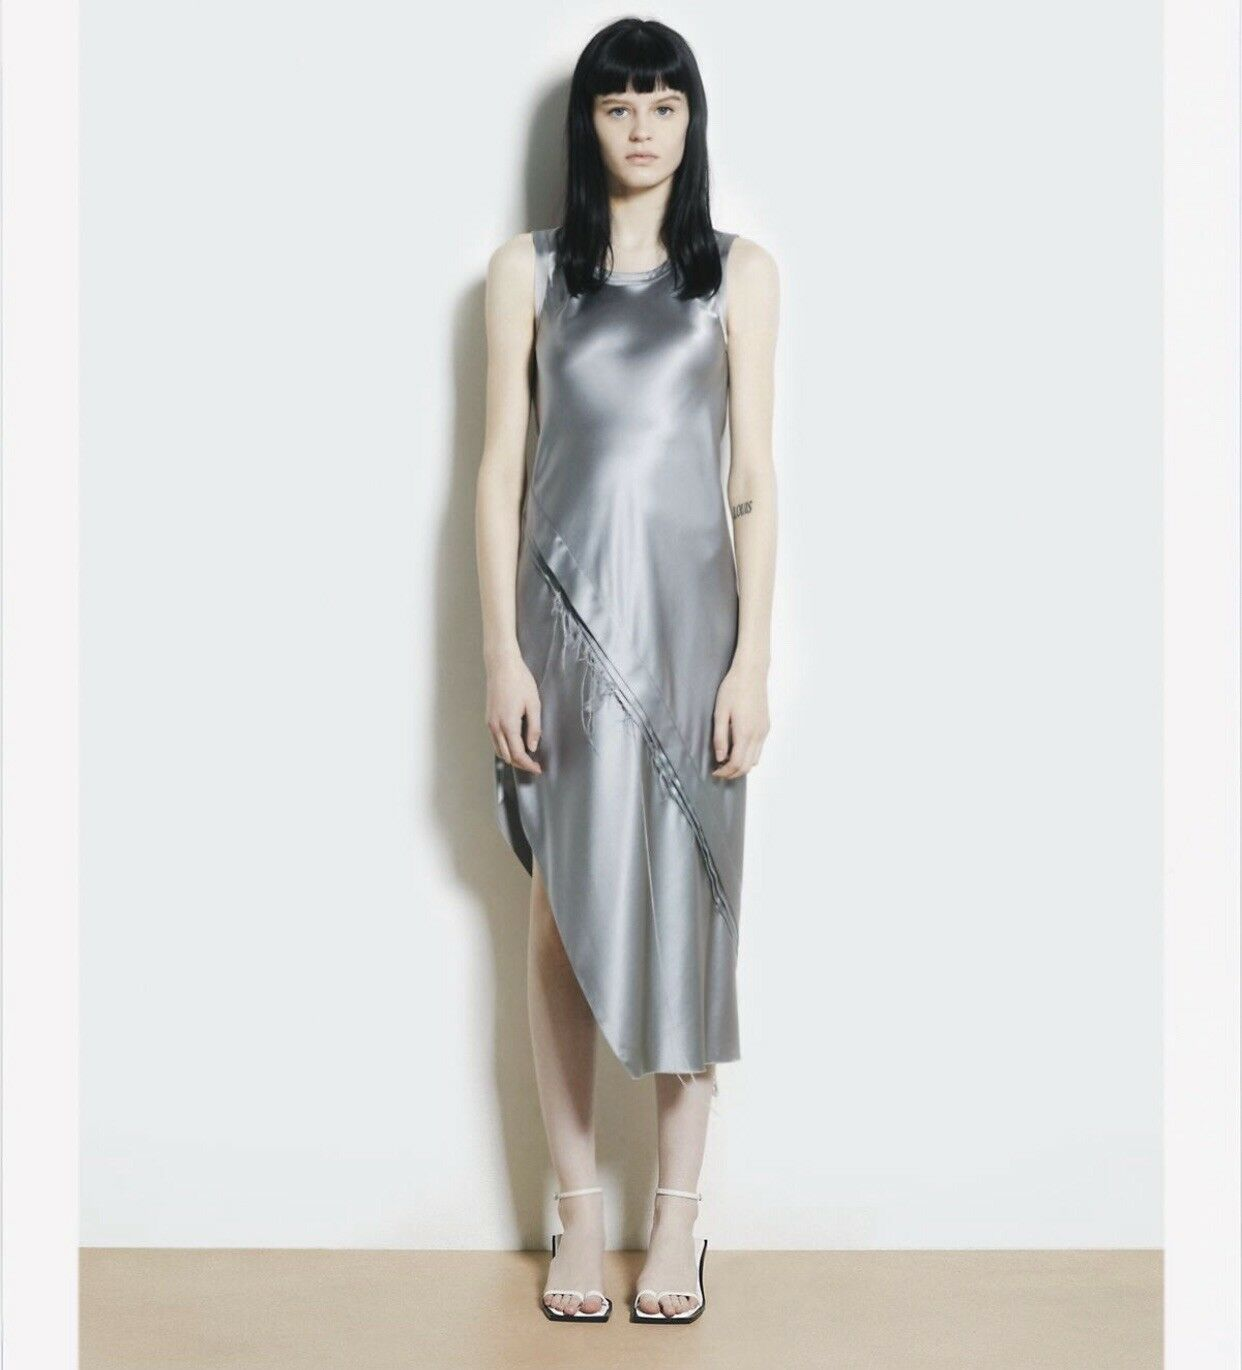 Helmut Lang Asymmetrical Jacquered Silk Slip Dress Size M  520